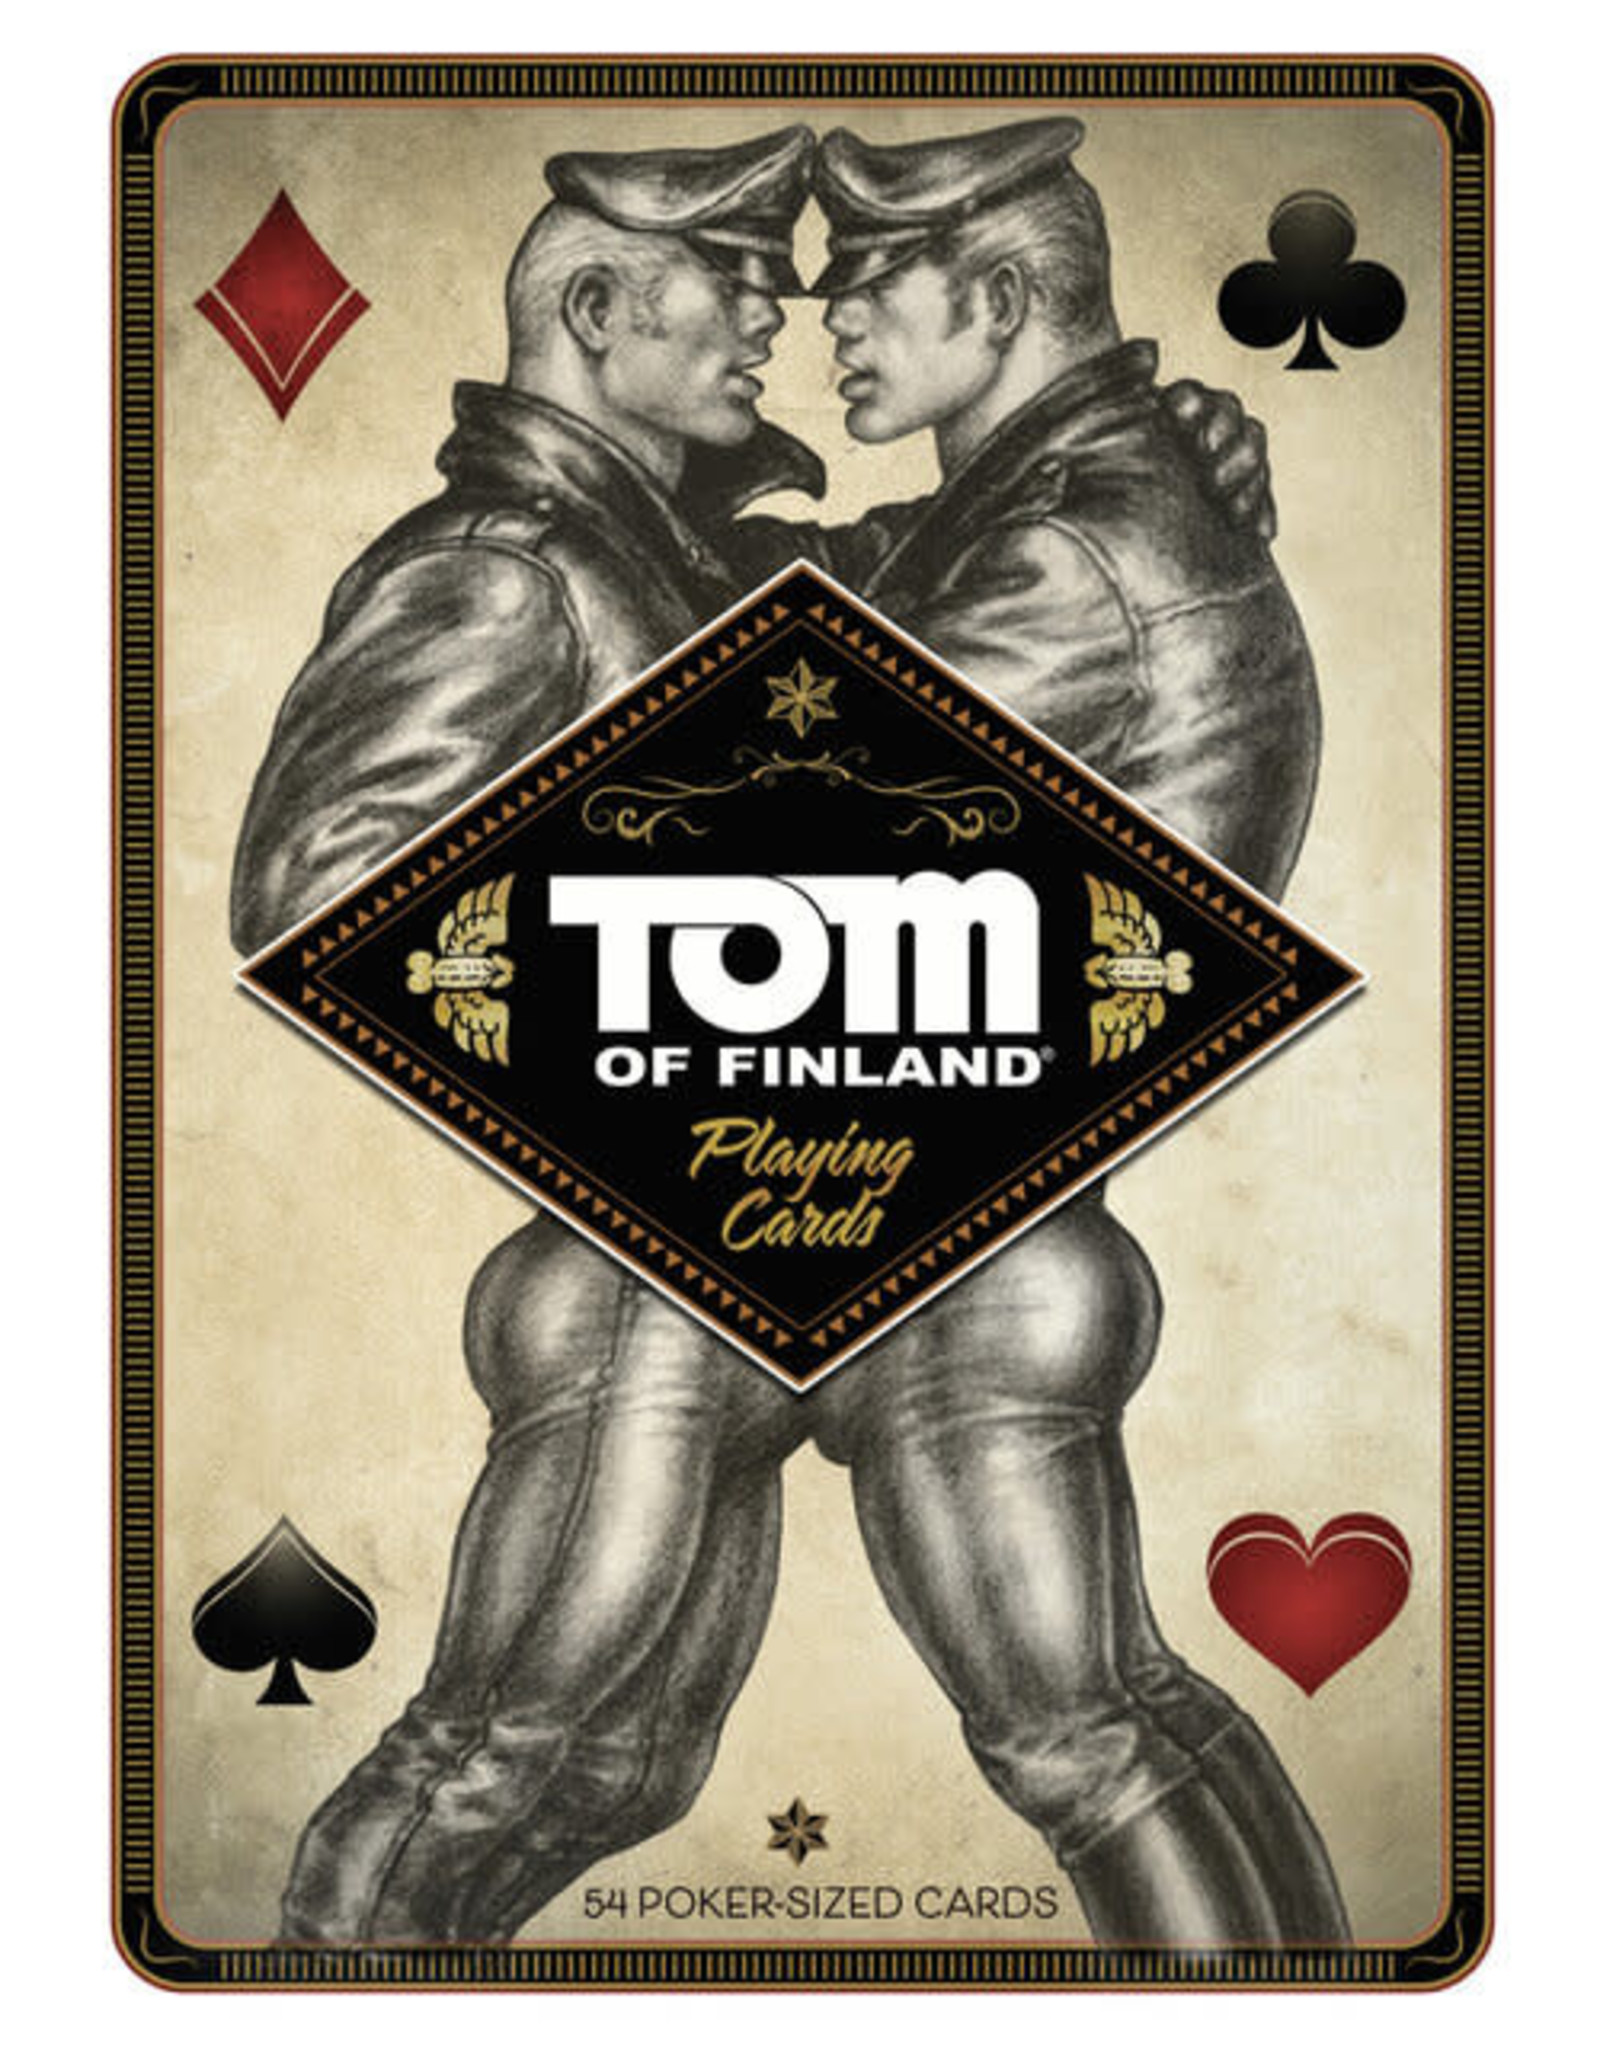 Peachy Kings Tom of Finland Playing Cards